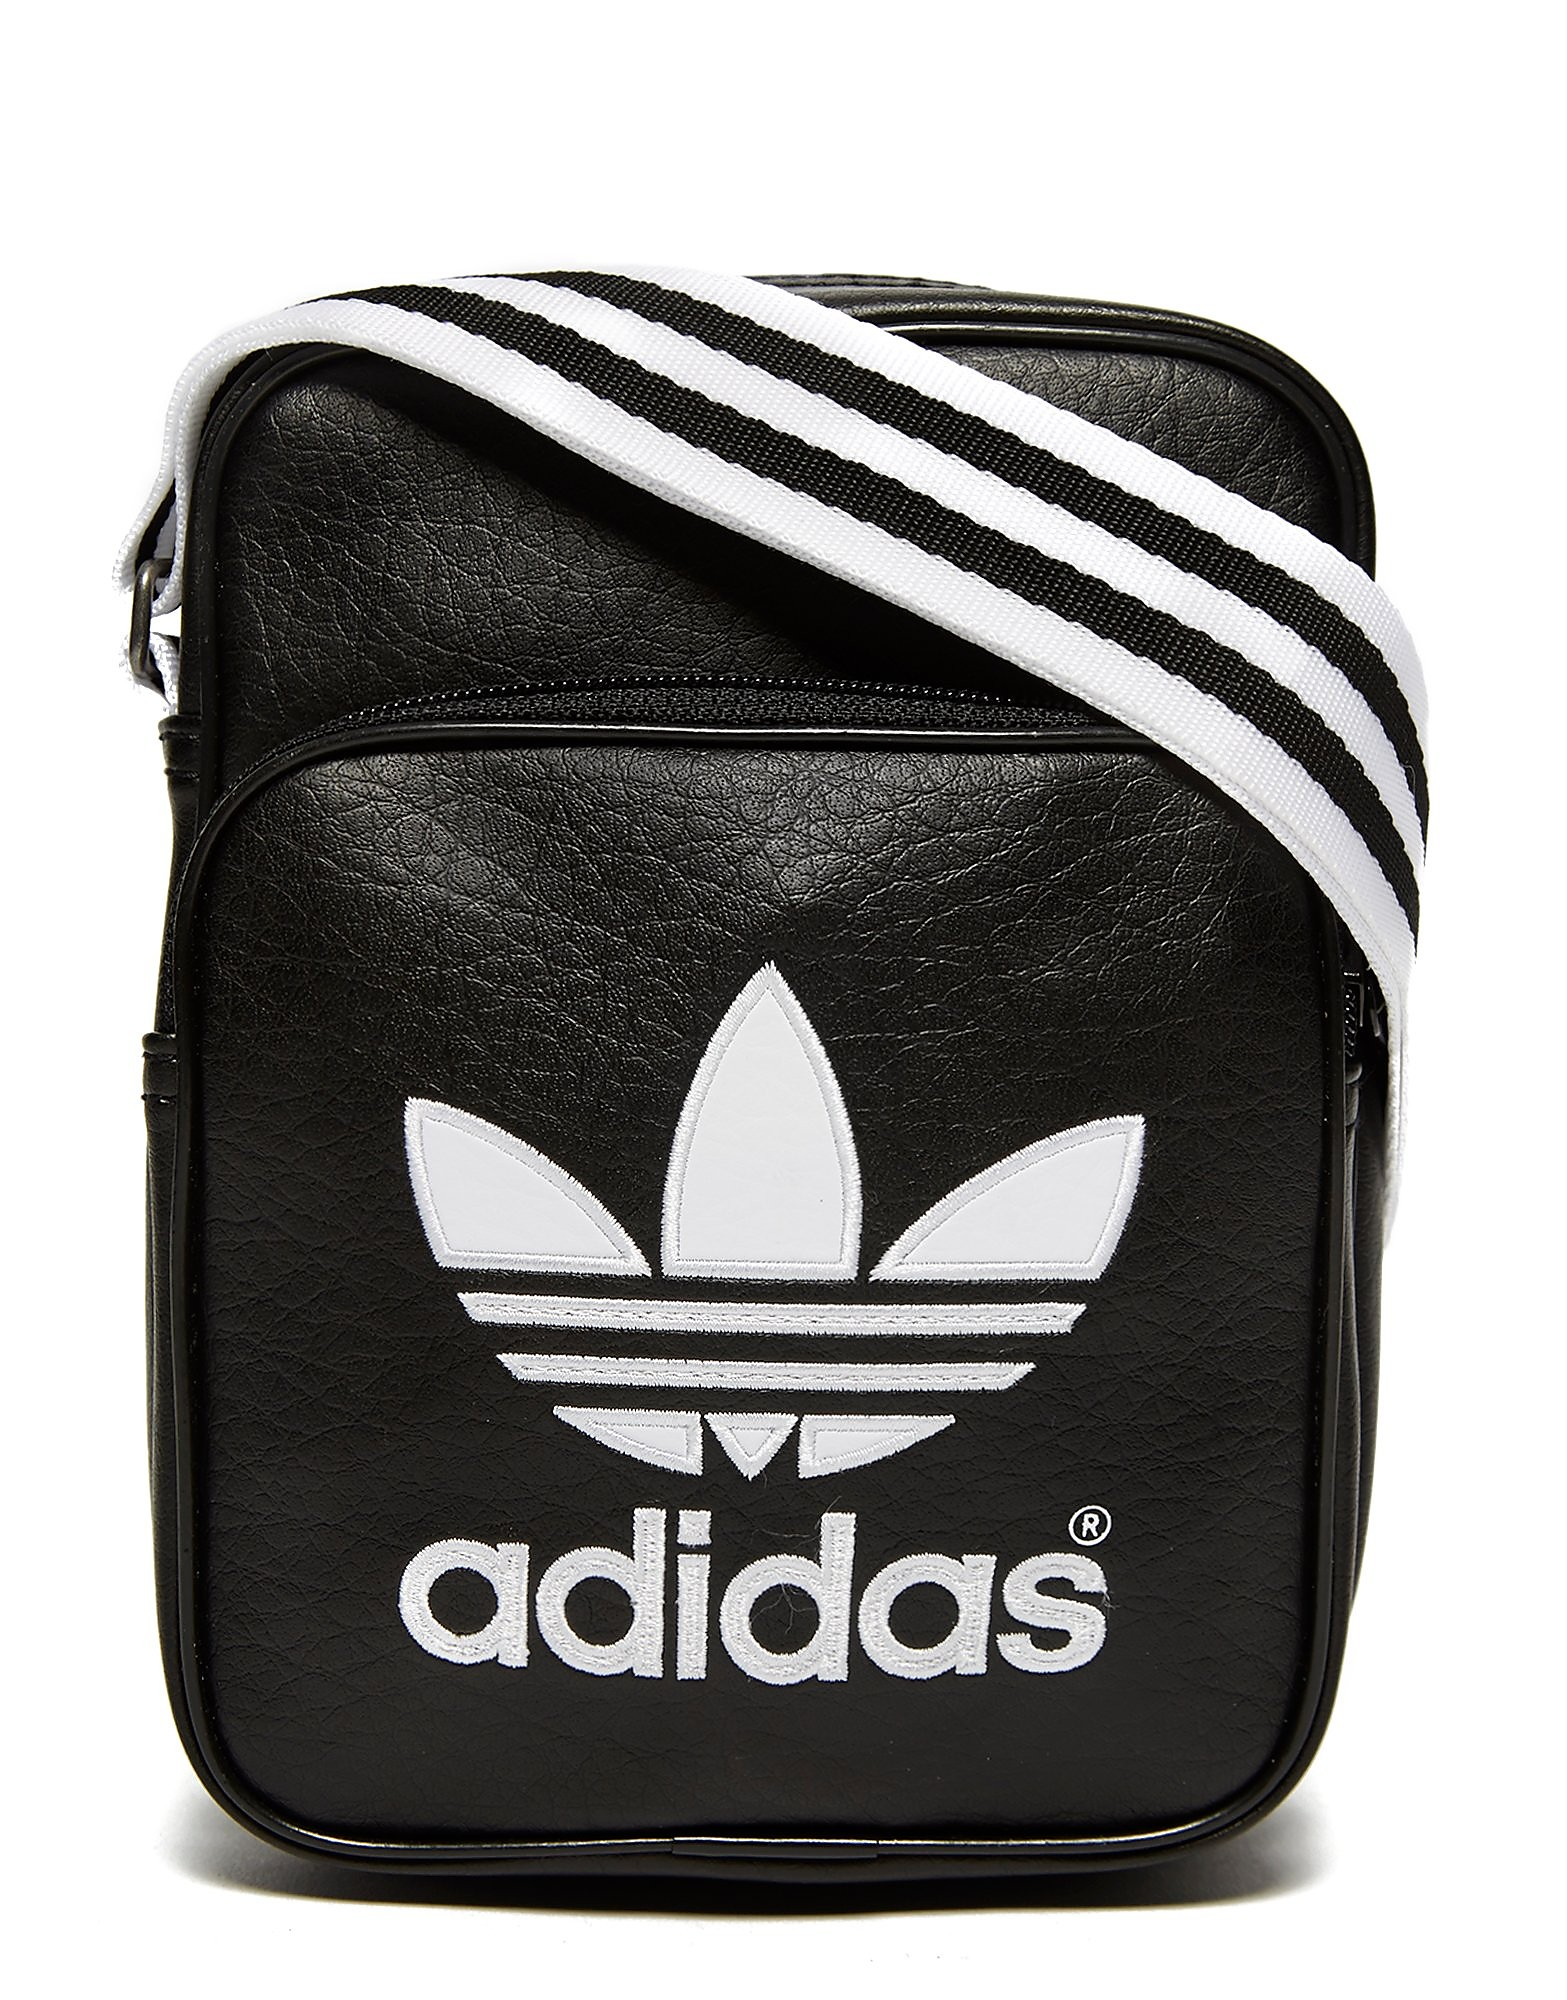 adidas Originals Sac Small Items